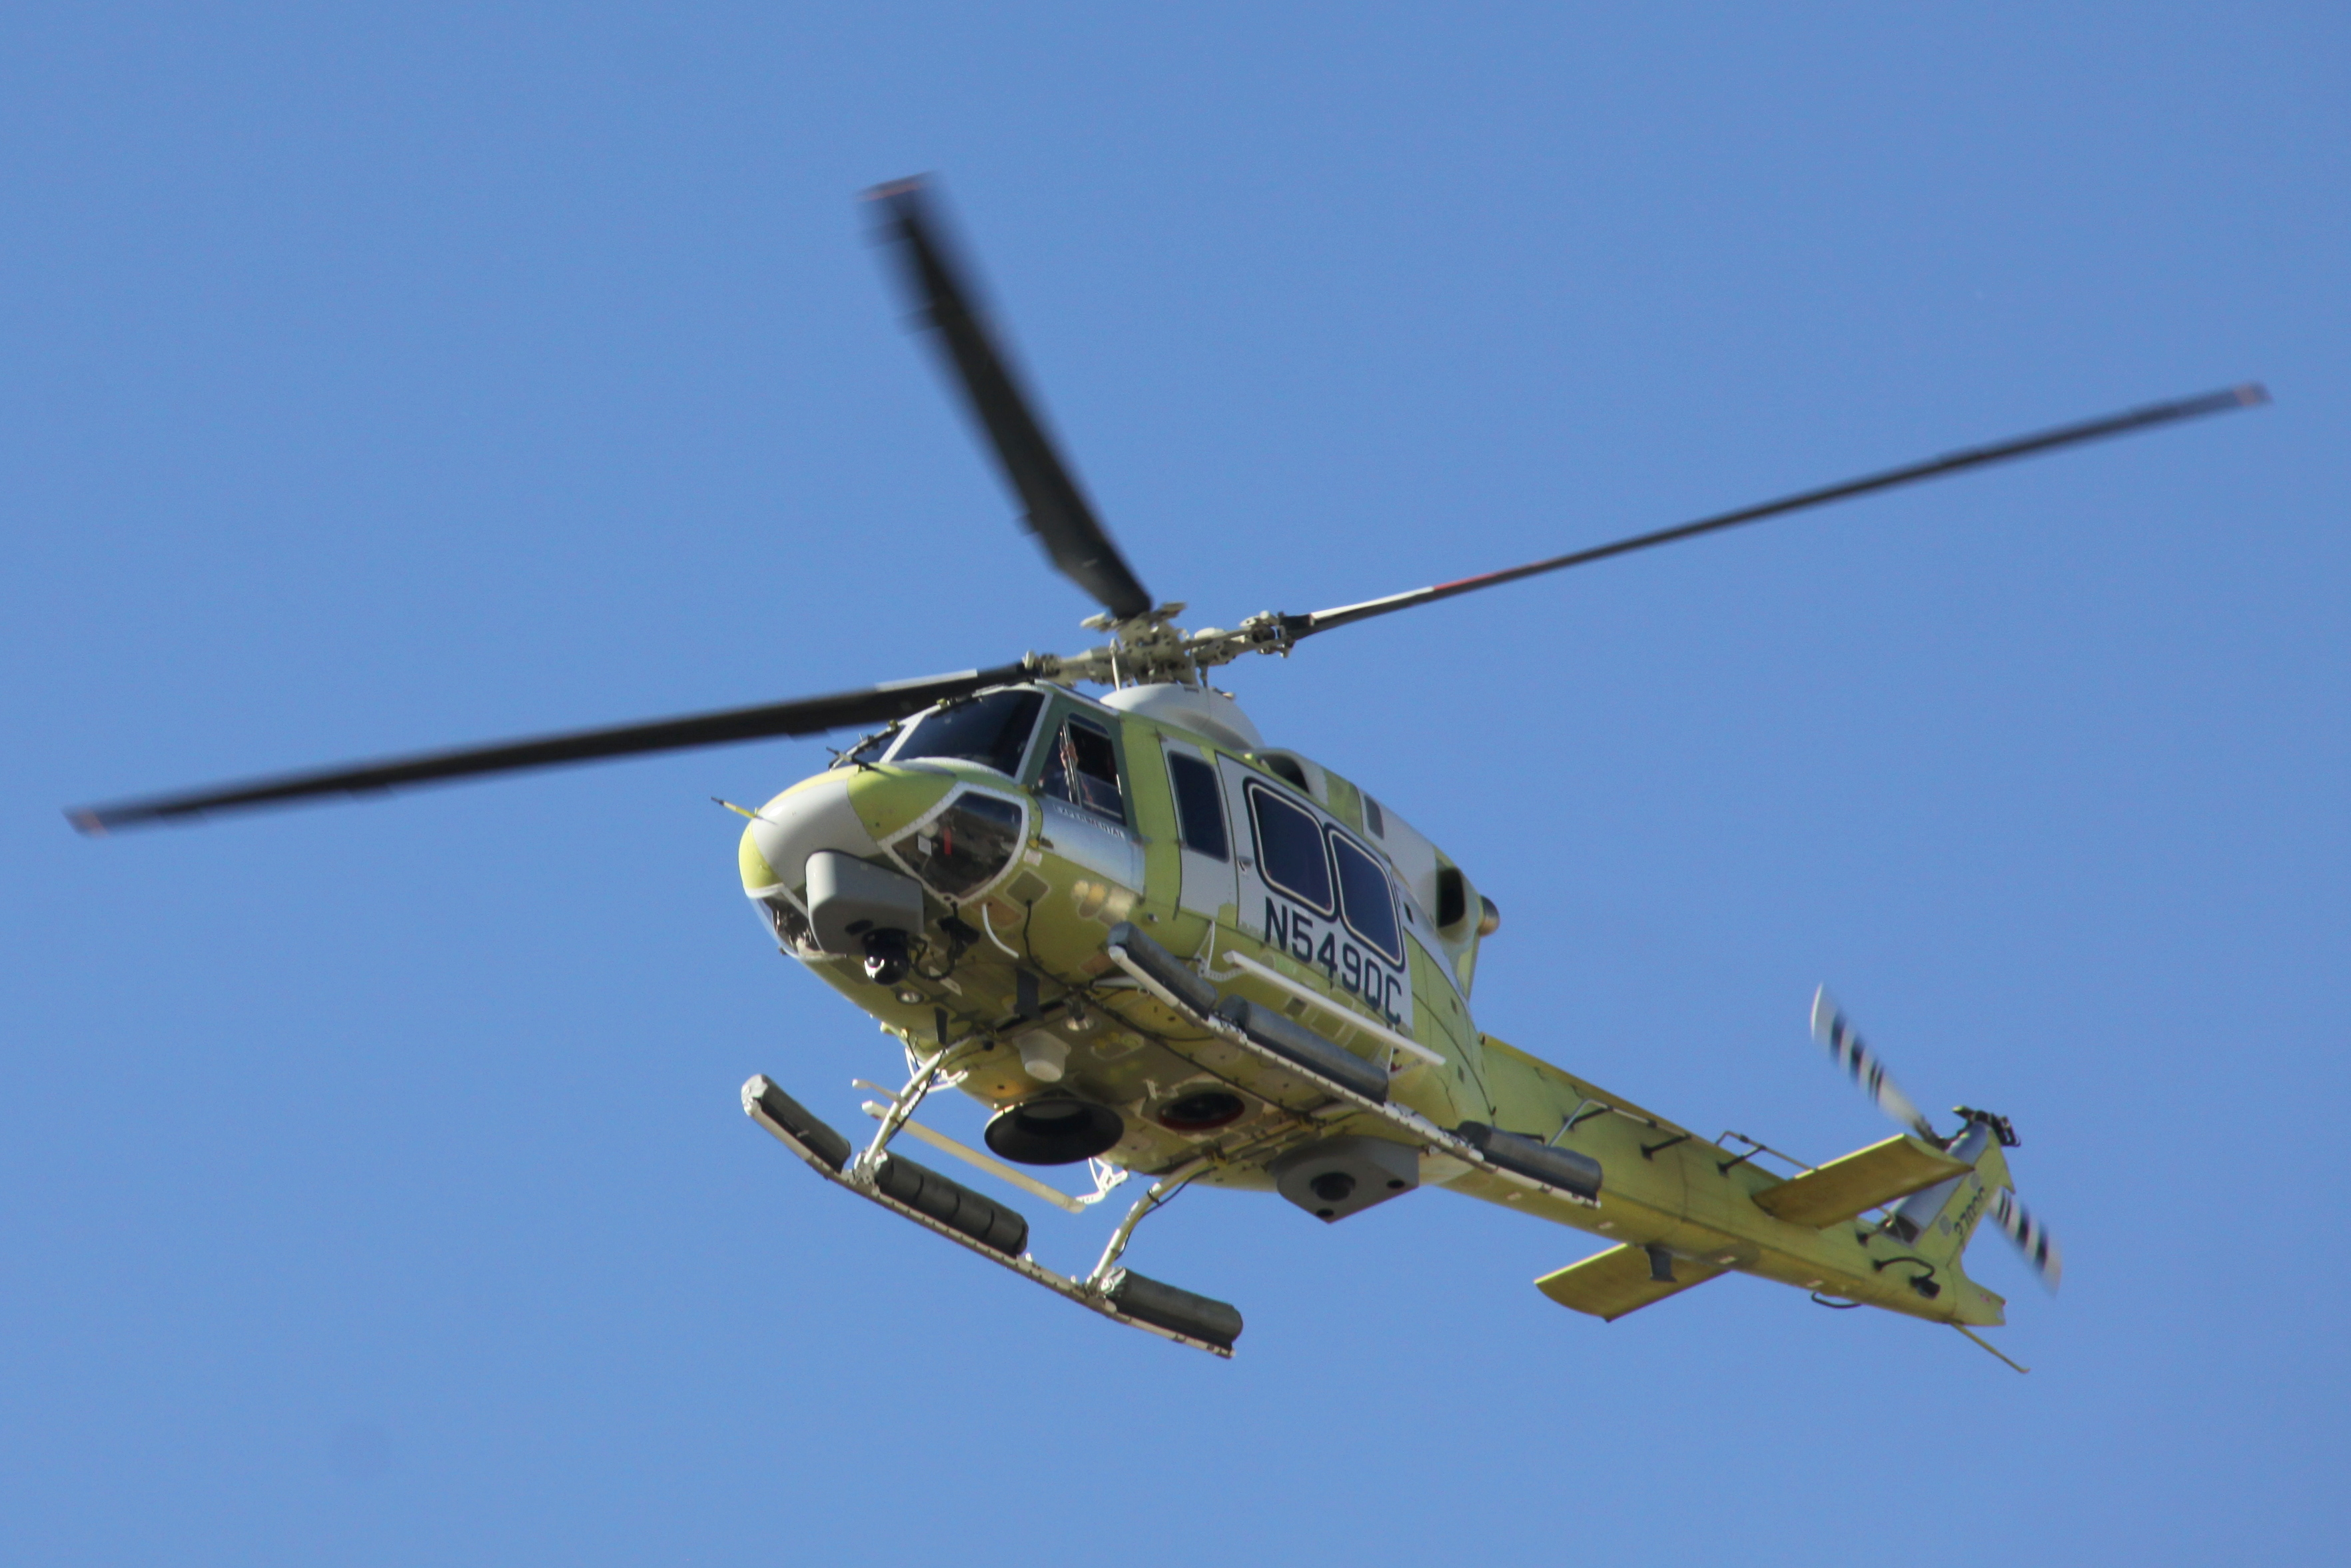 Bell 412 EPI ASW - Page 3 49139148676_2a820a0485_o_d